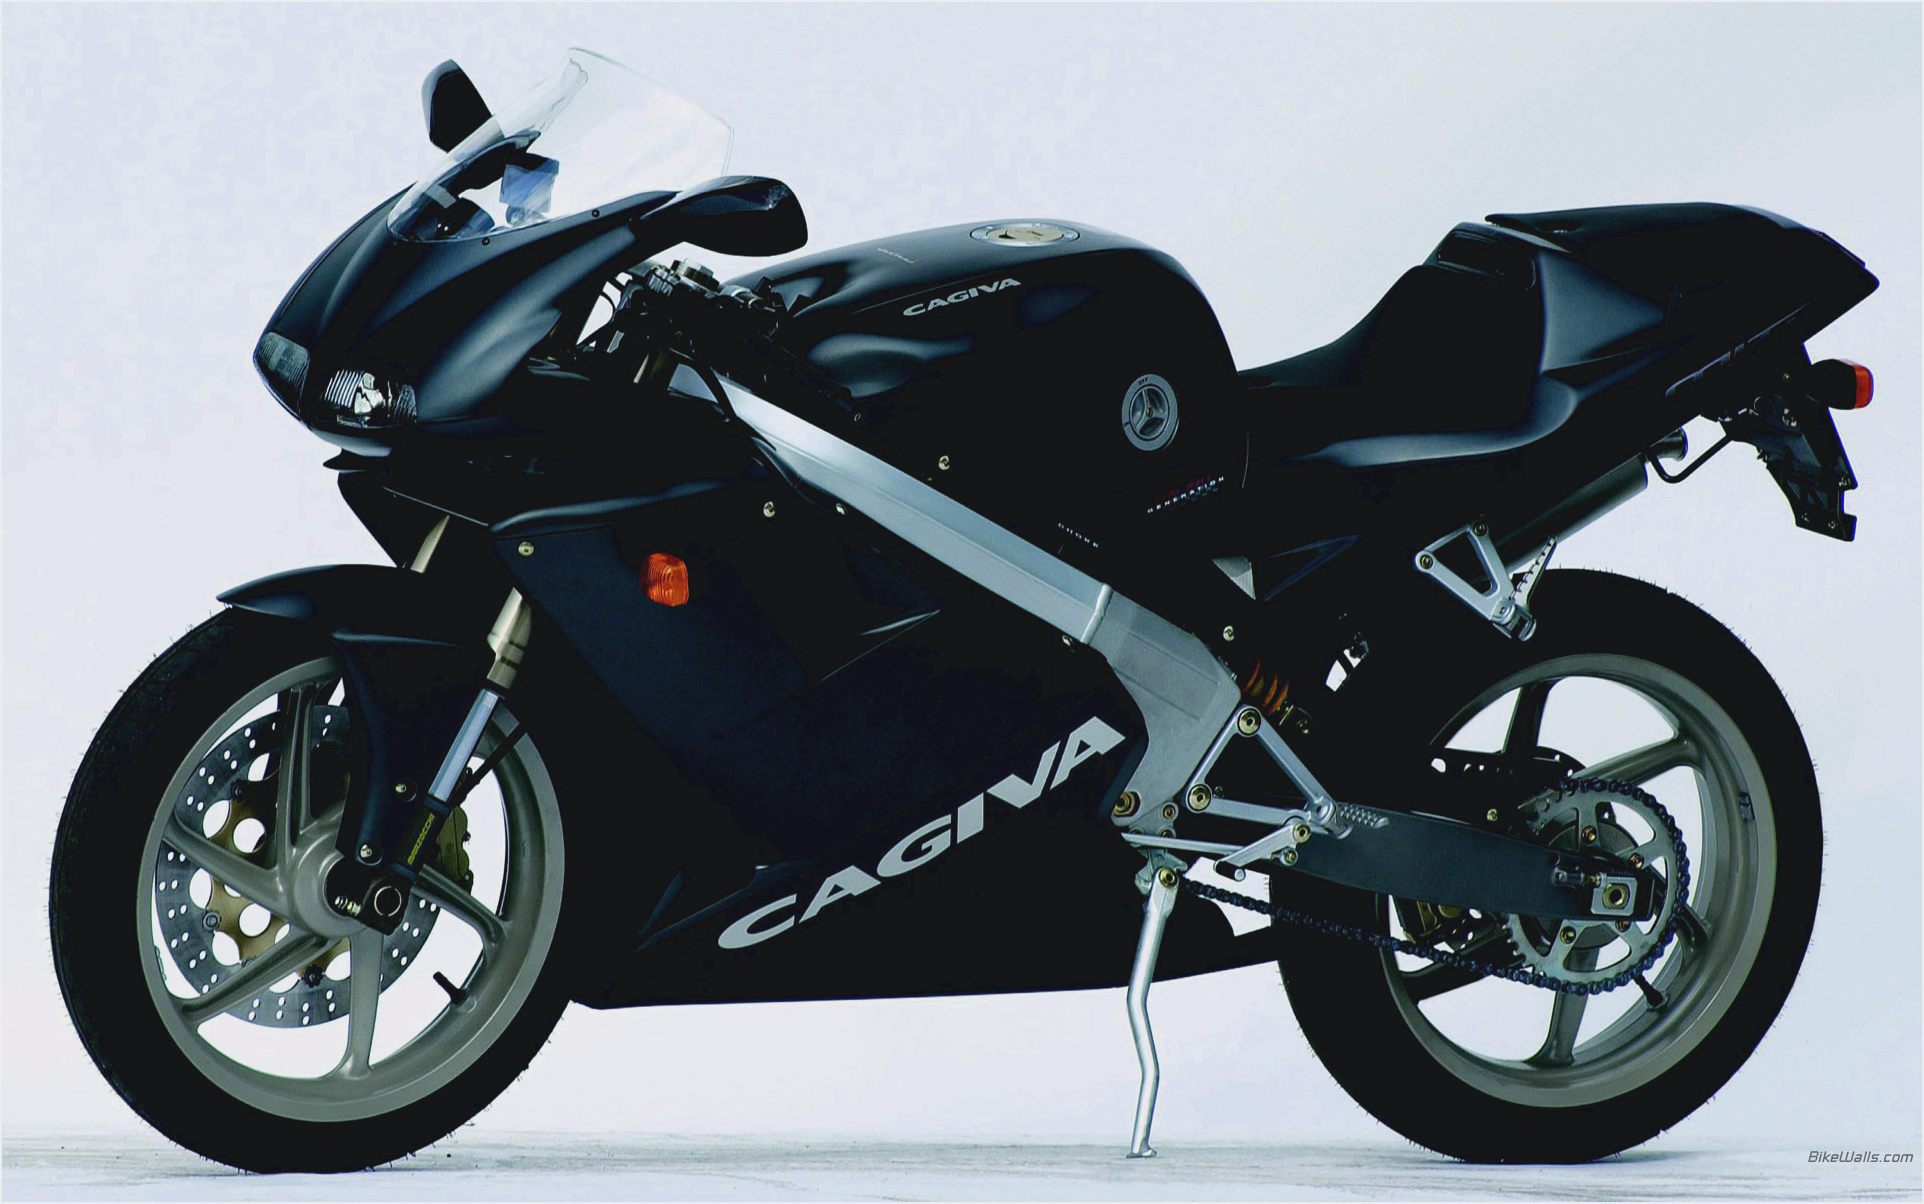 Cagiva Planet 125 1999 images #67387